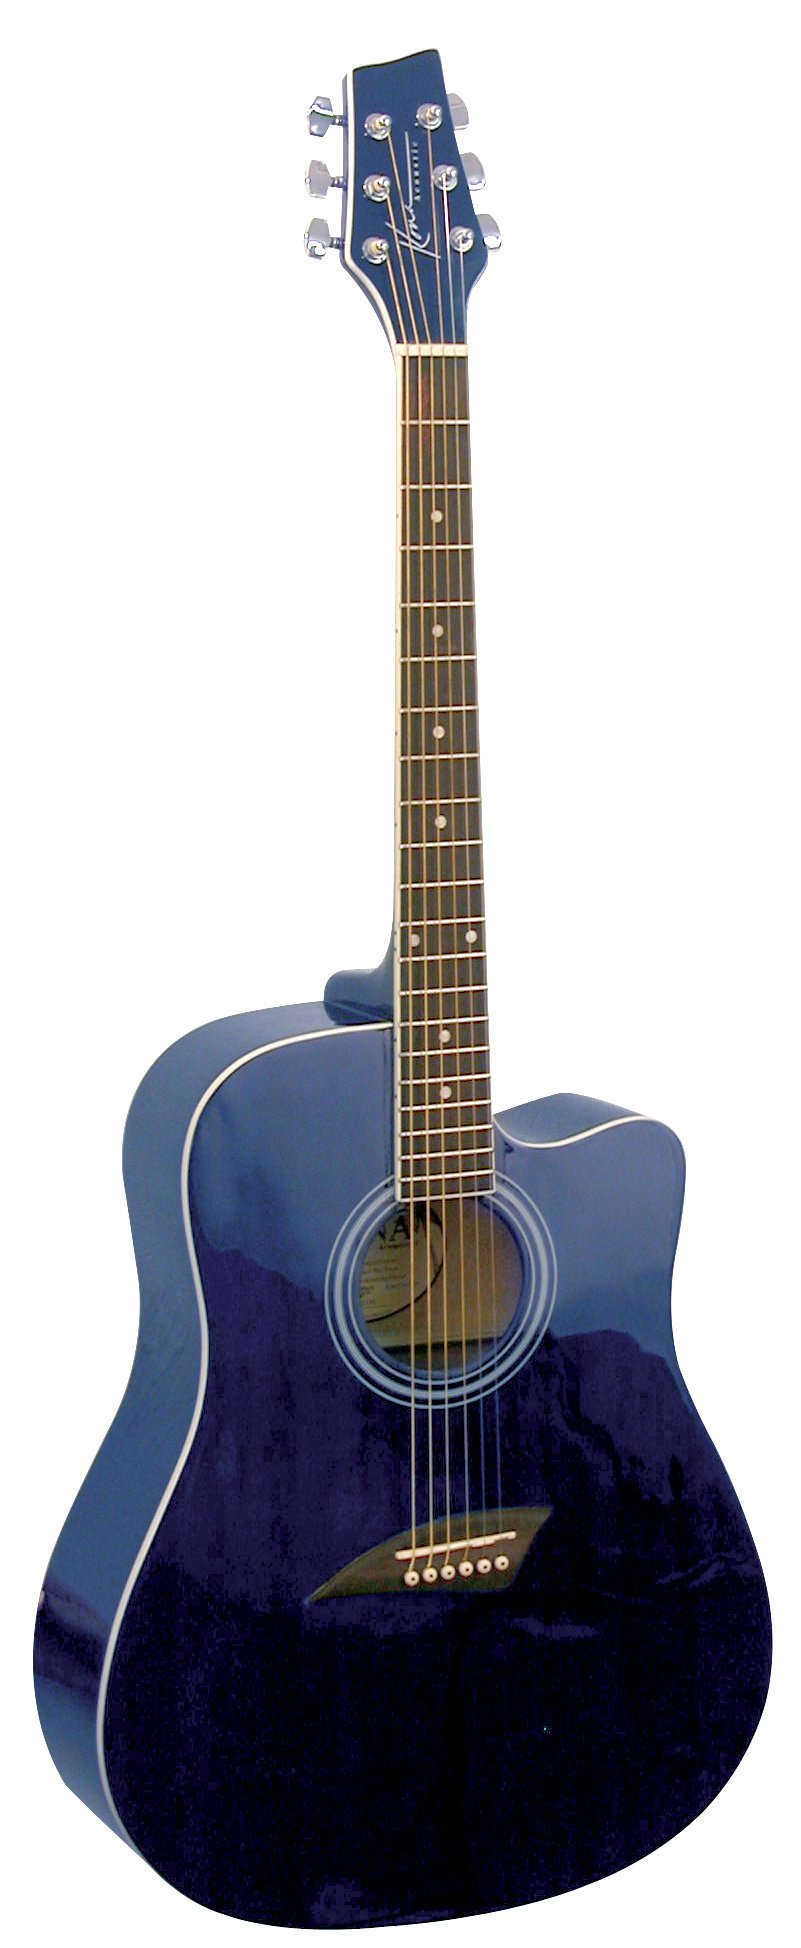 Kona K1TBL Acoustic Dreadnought Cutaway Guitar in Transparent Blue Finish